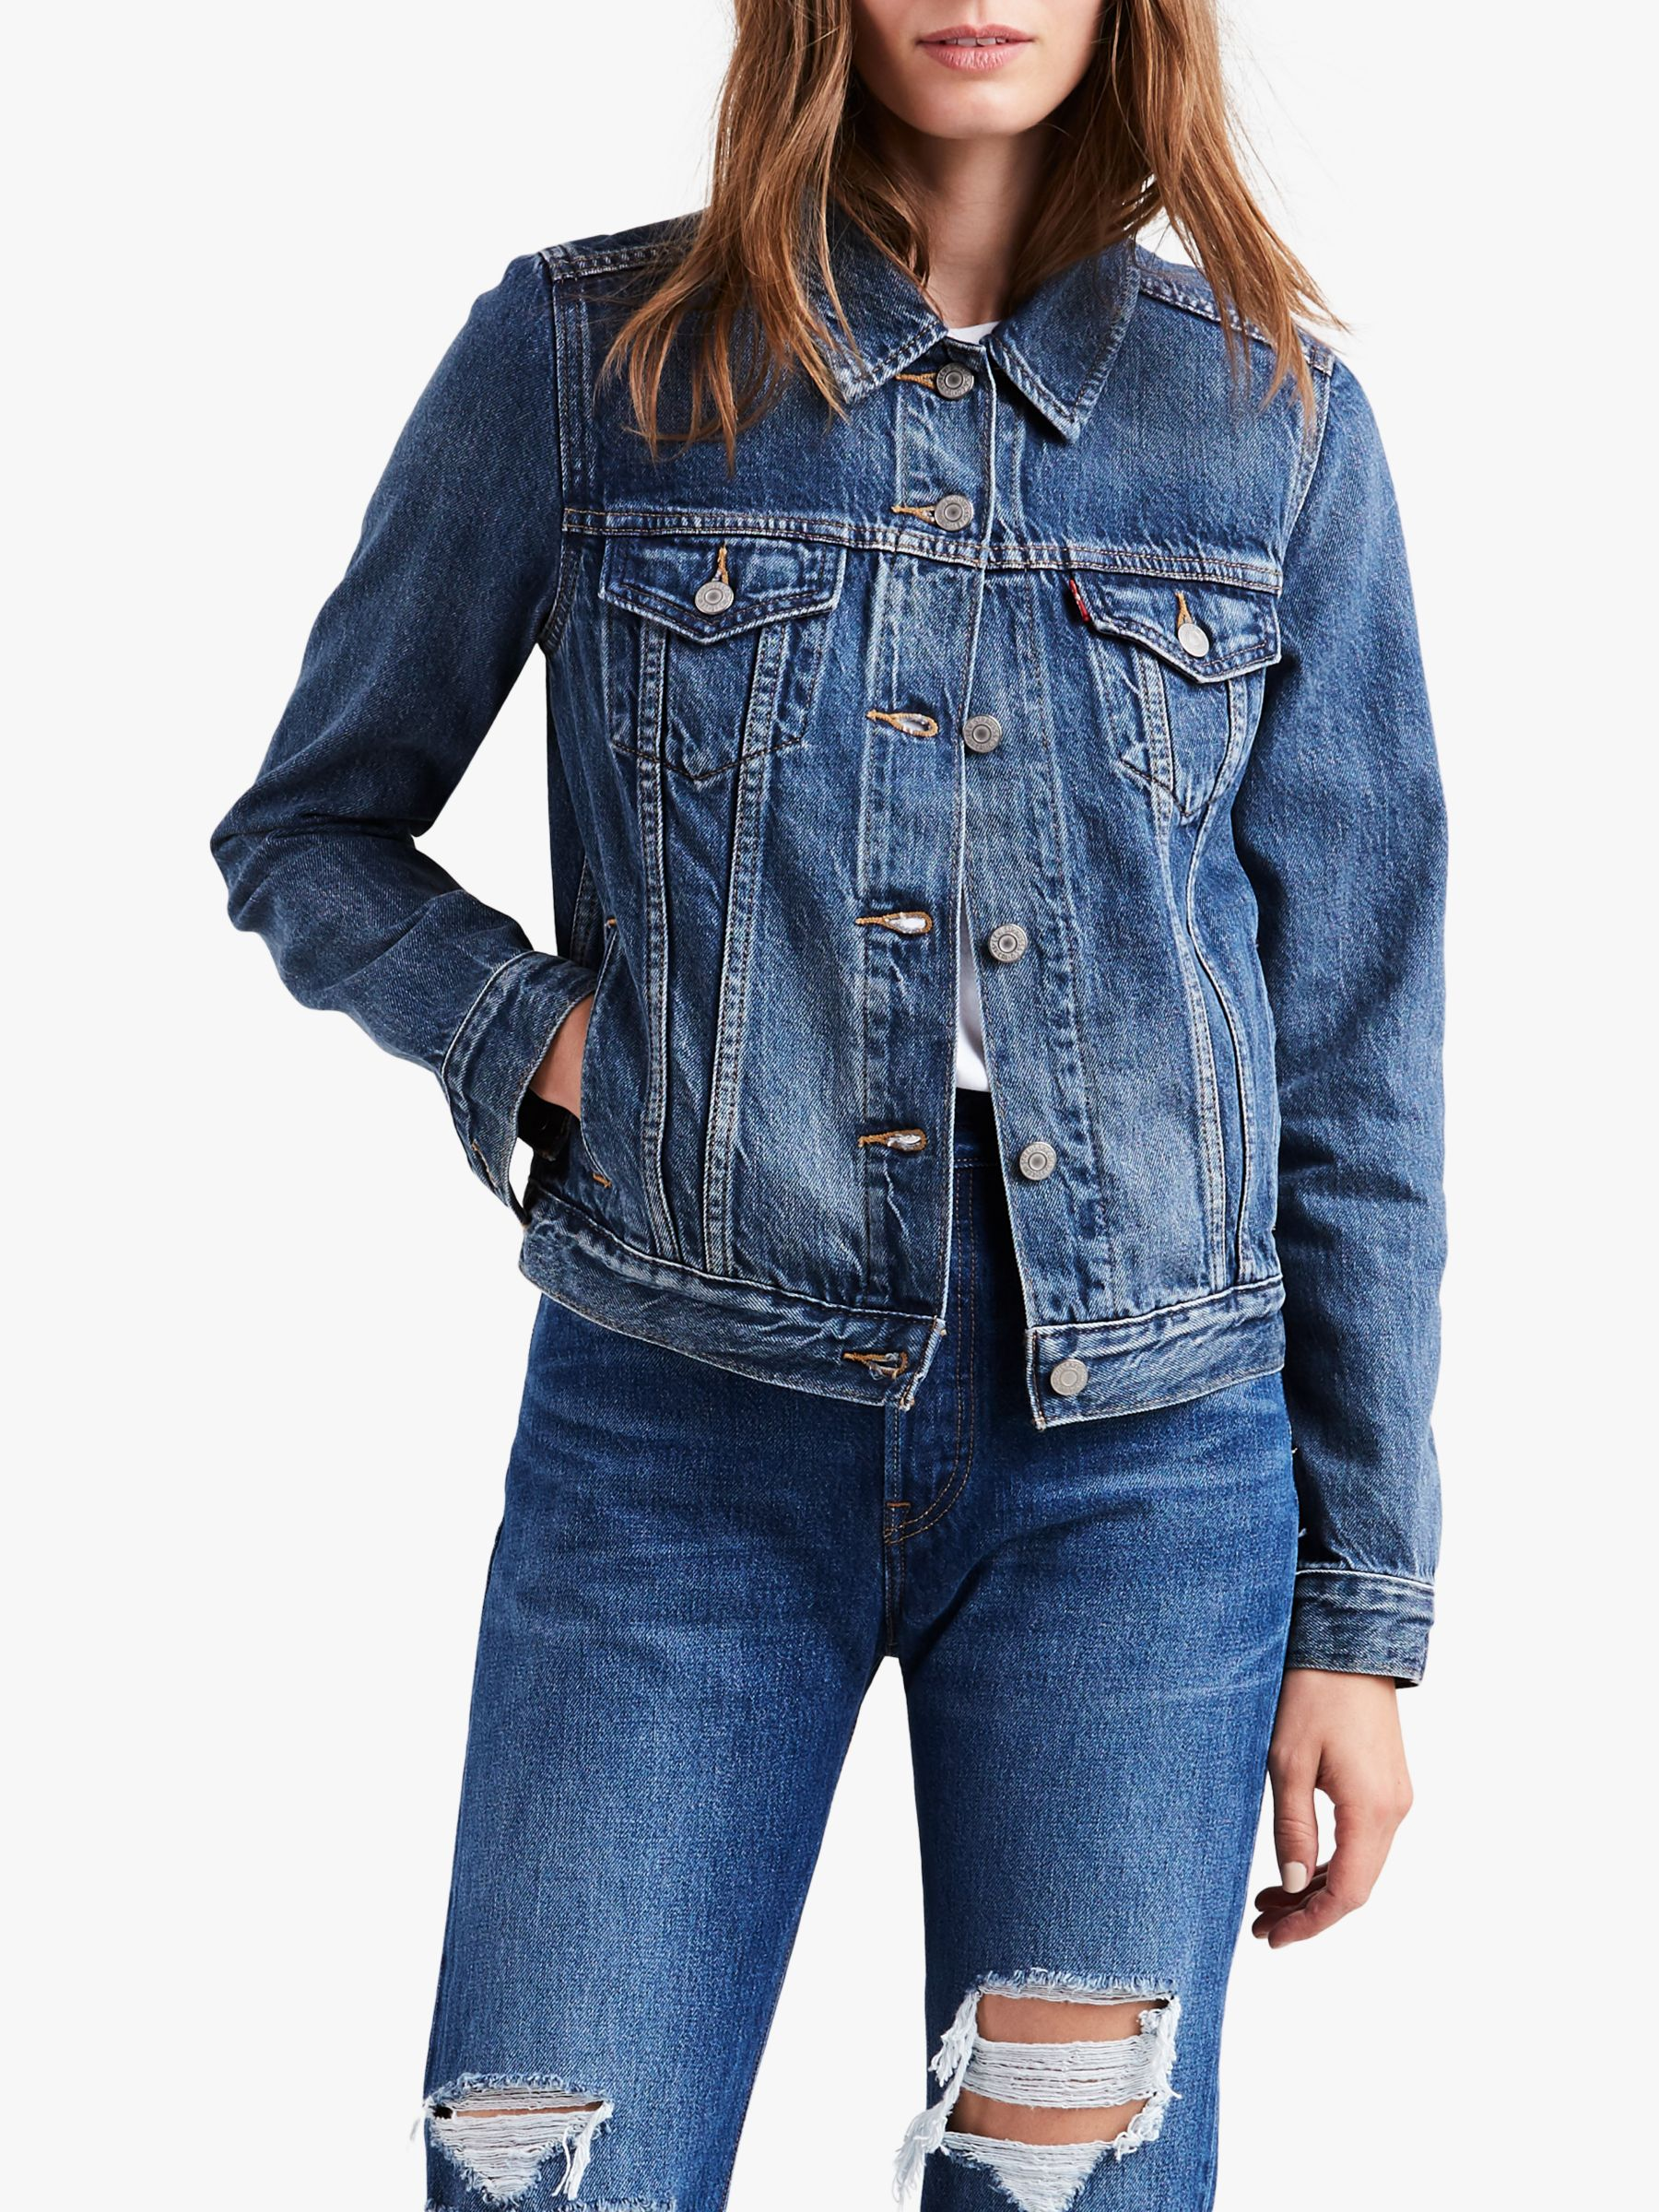 Levi's Levi's Original Trucker Denim Jacket, Soft As Butter Dark